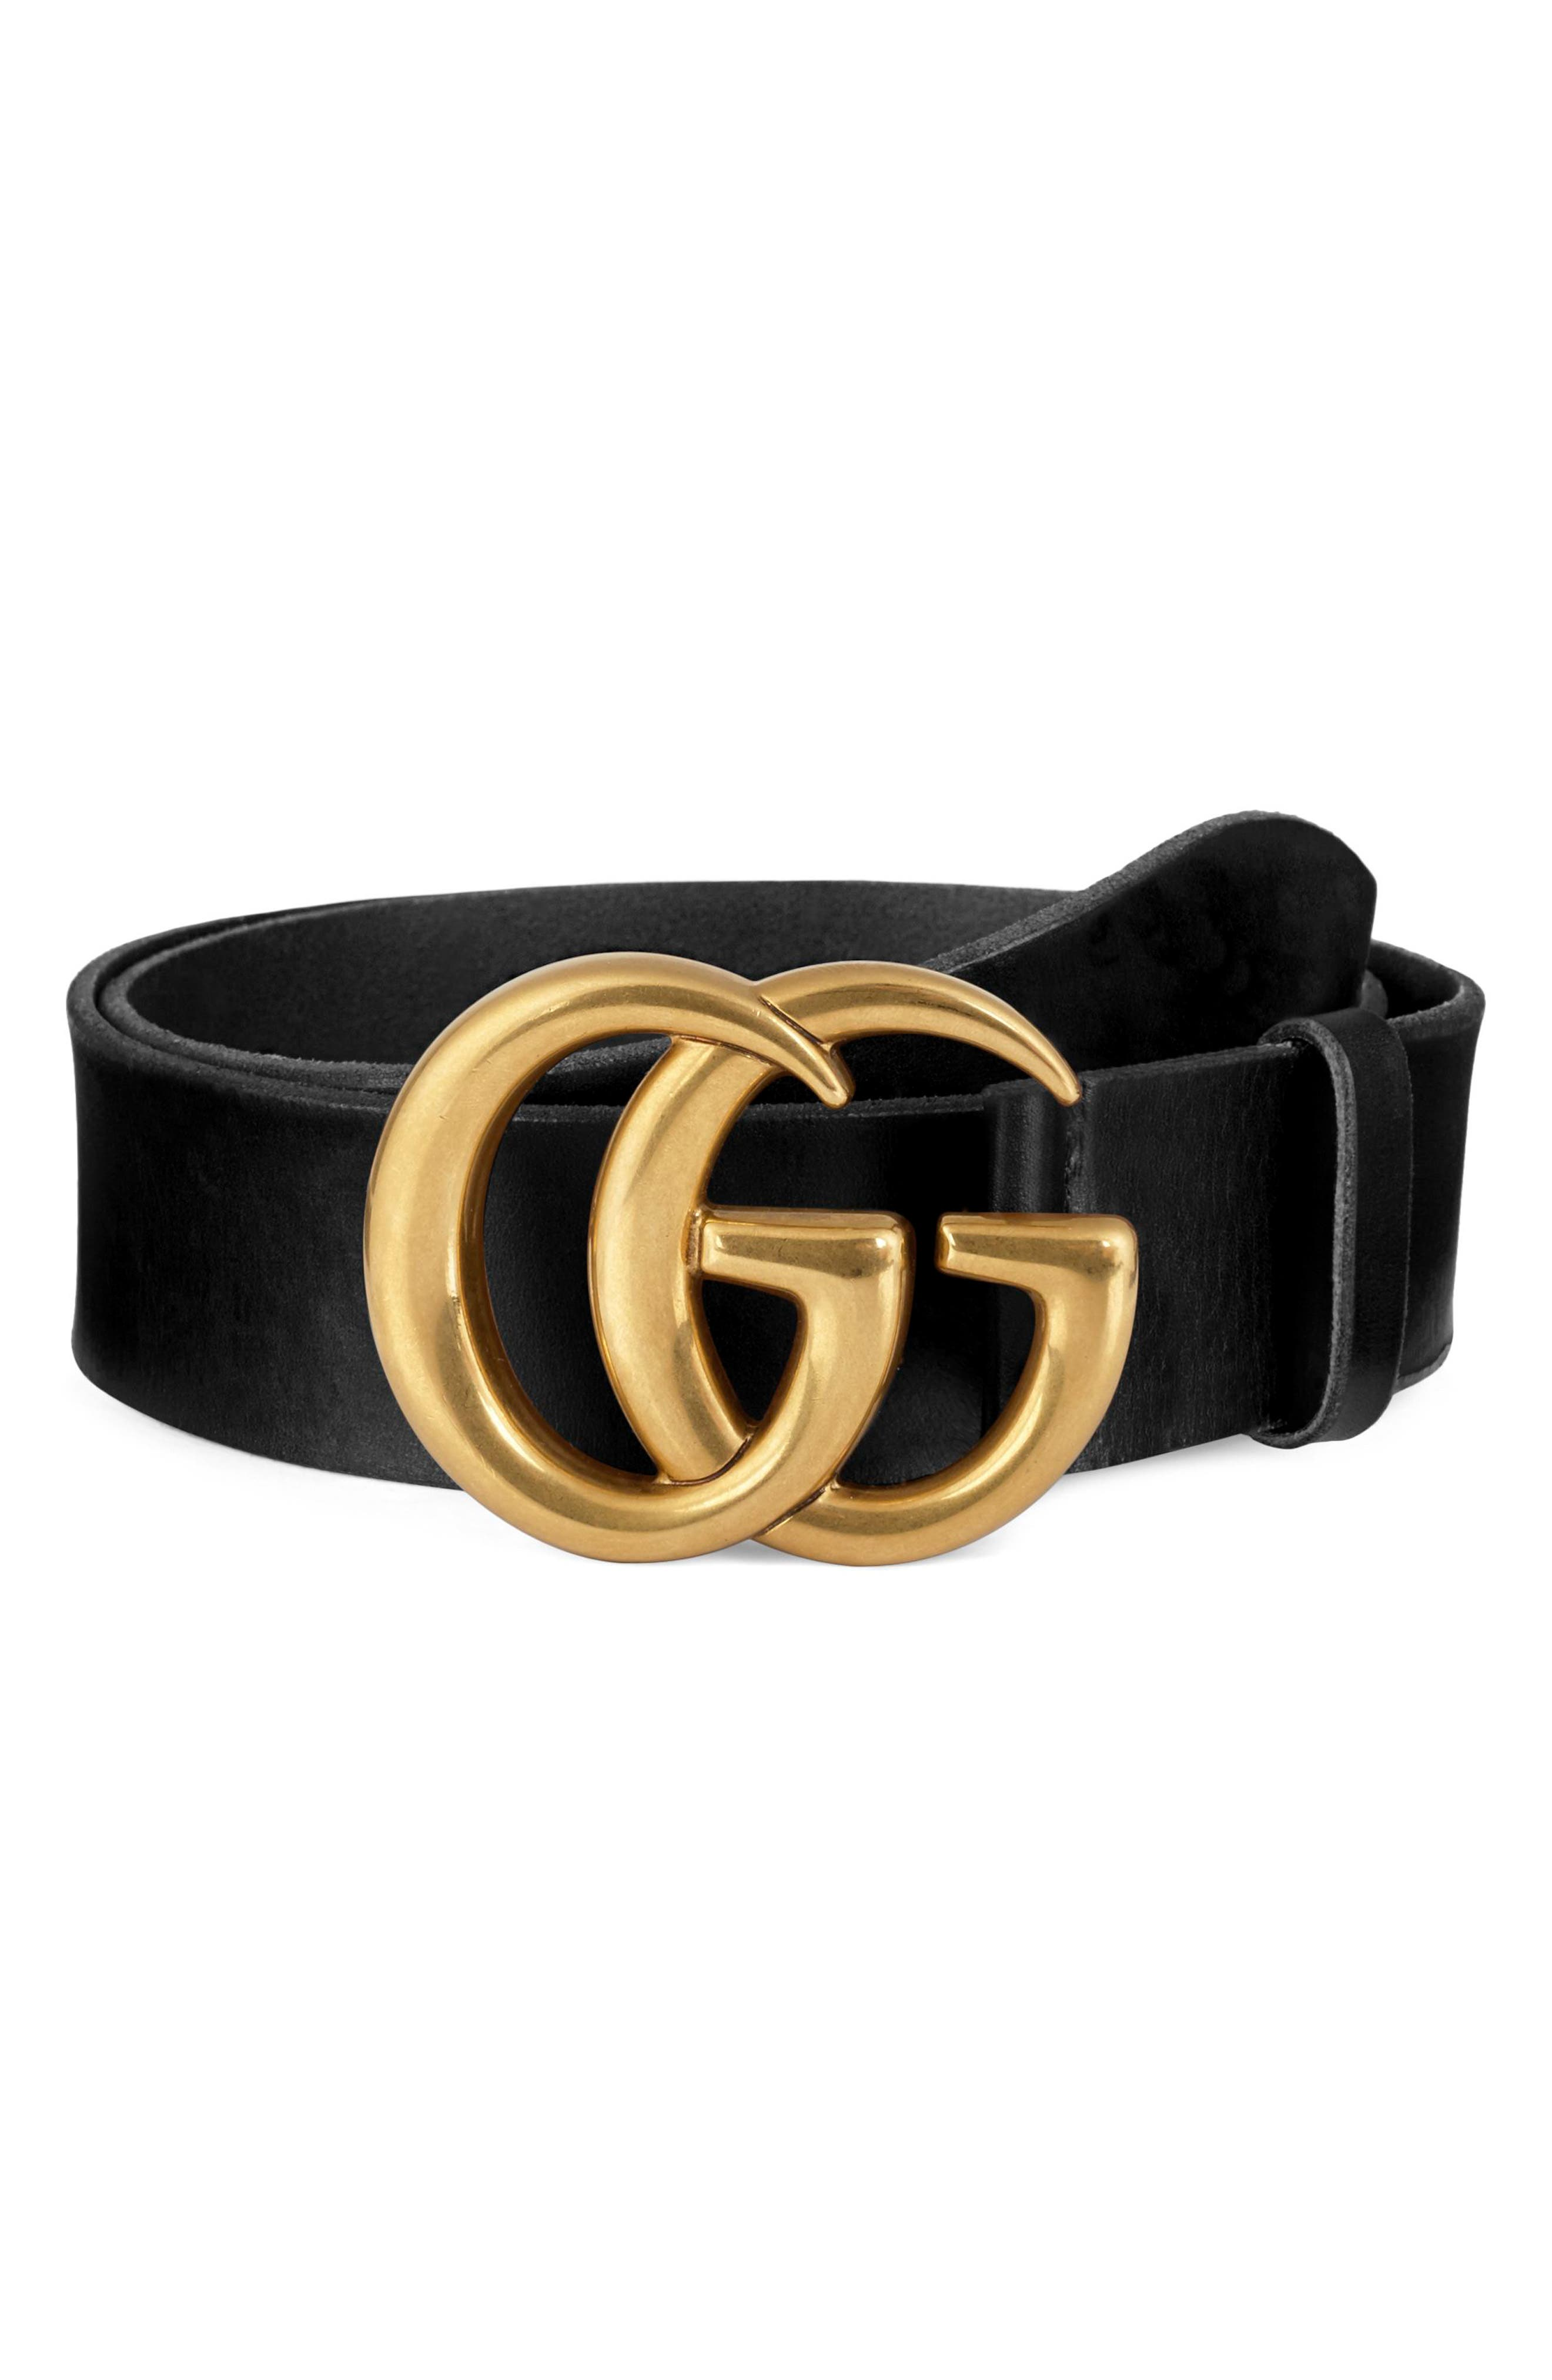 Running Gold Leather Belt,                         Main,                         color,